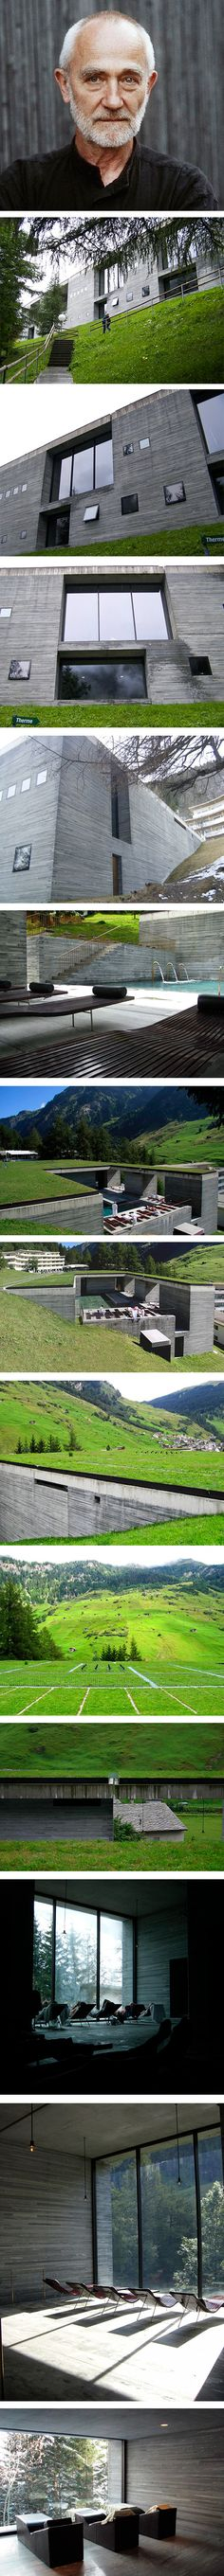 Hot Springs in Vals (Switzerland) by architect Peter Zumthor (winnner of Pritzker Award 2009)